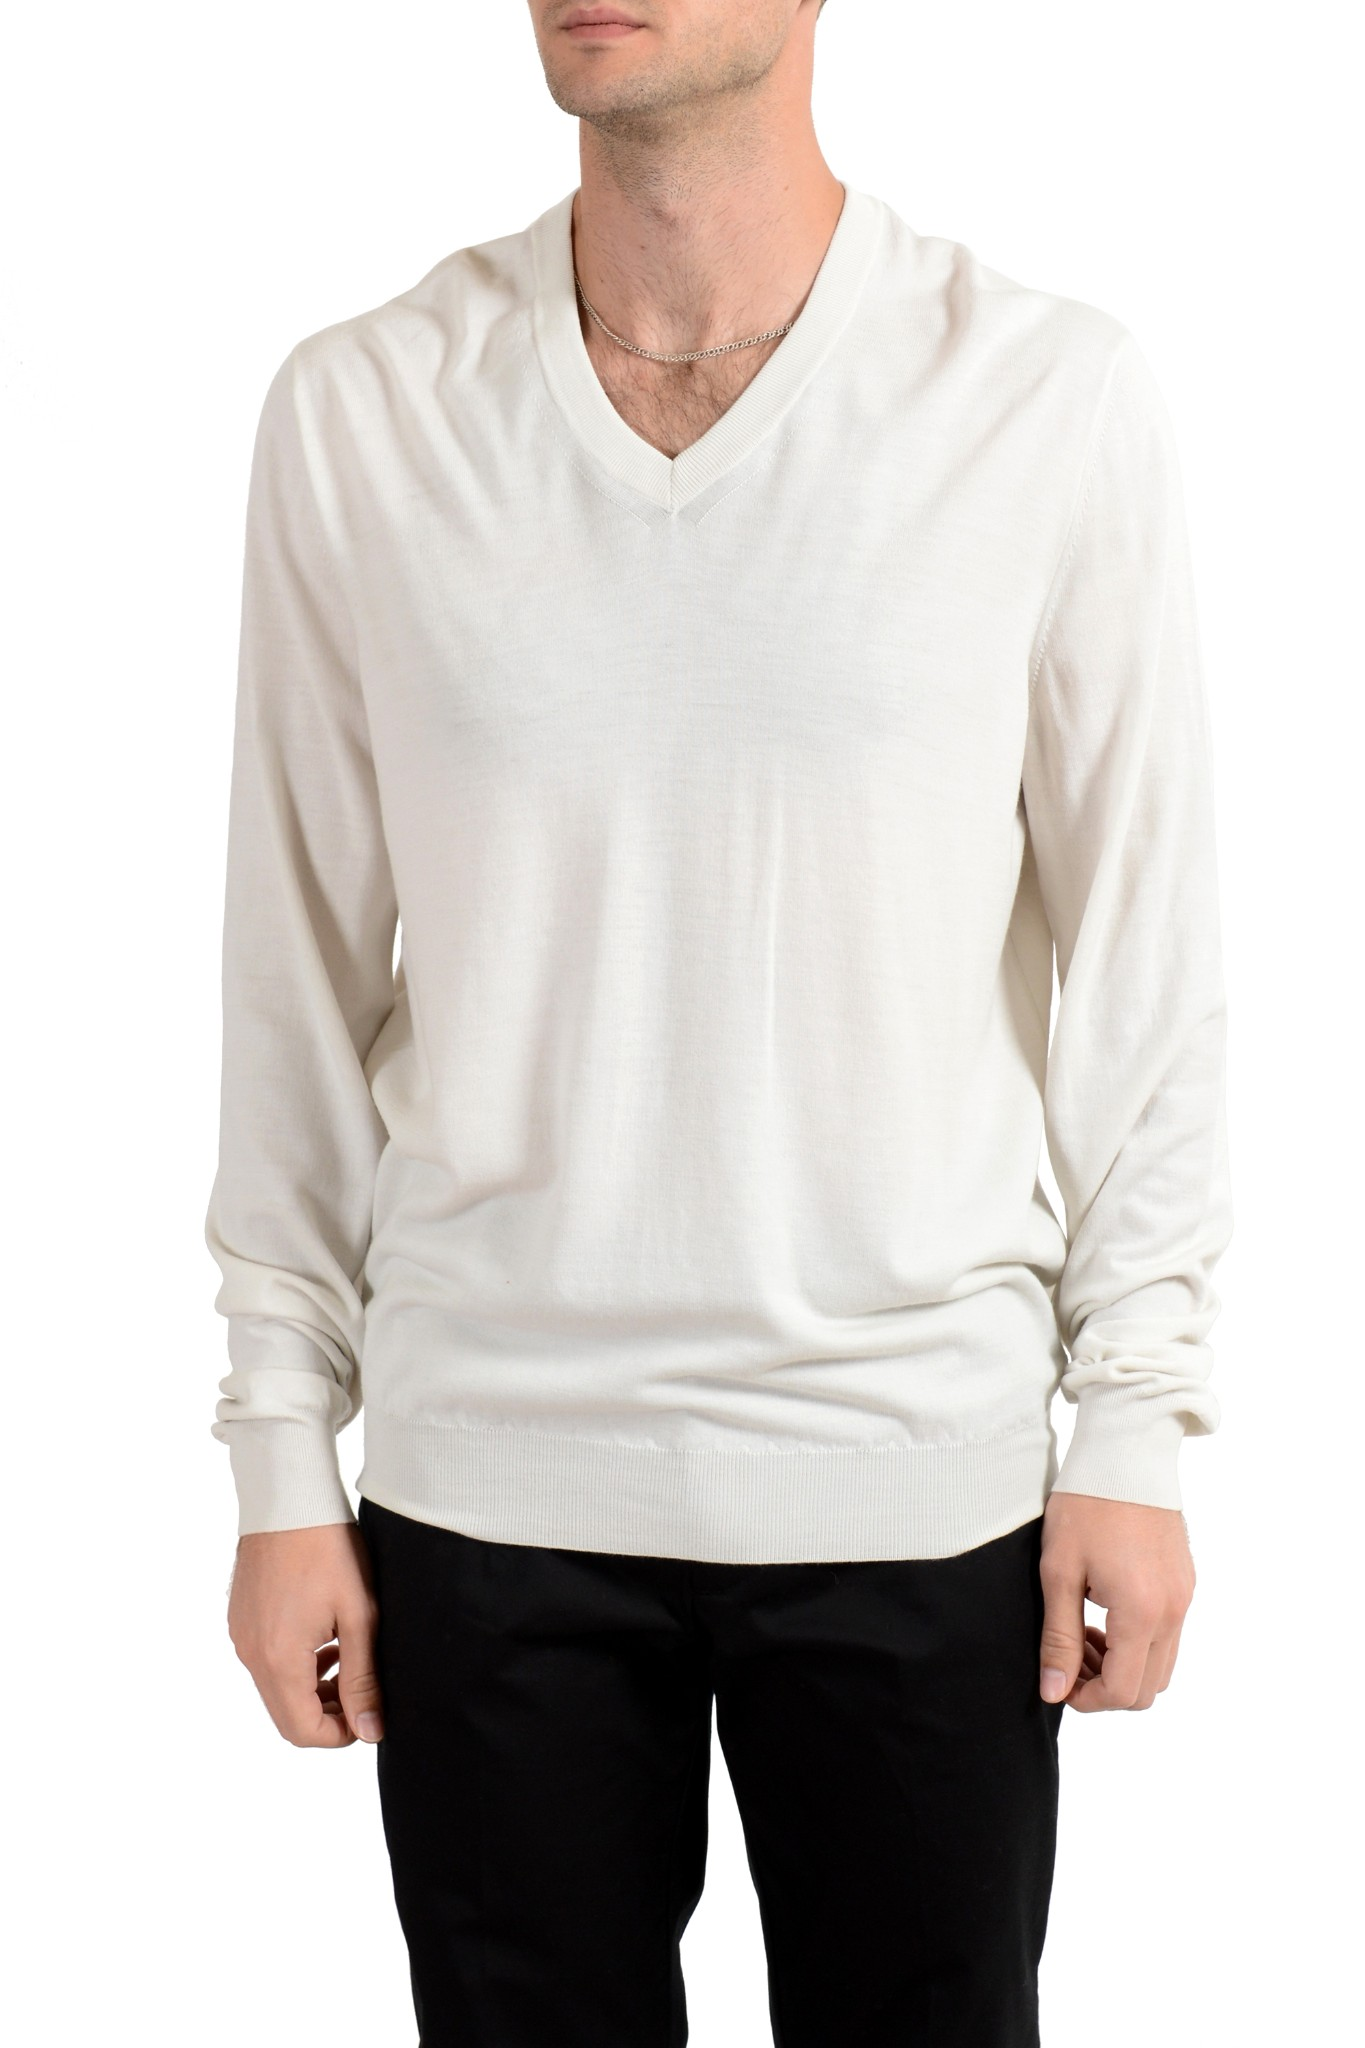 Details about Malo Men's 100% Wool Off White V Neck Sweater US 2XL IT 56